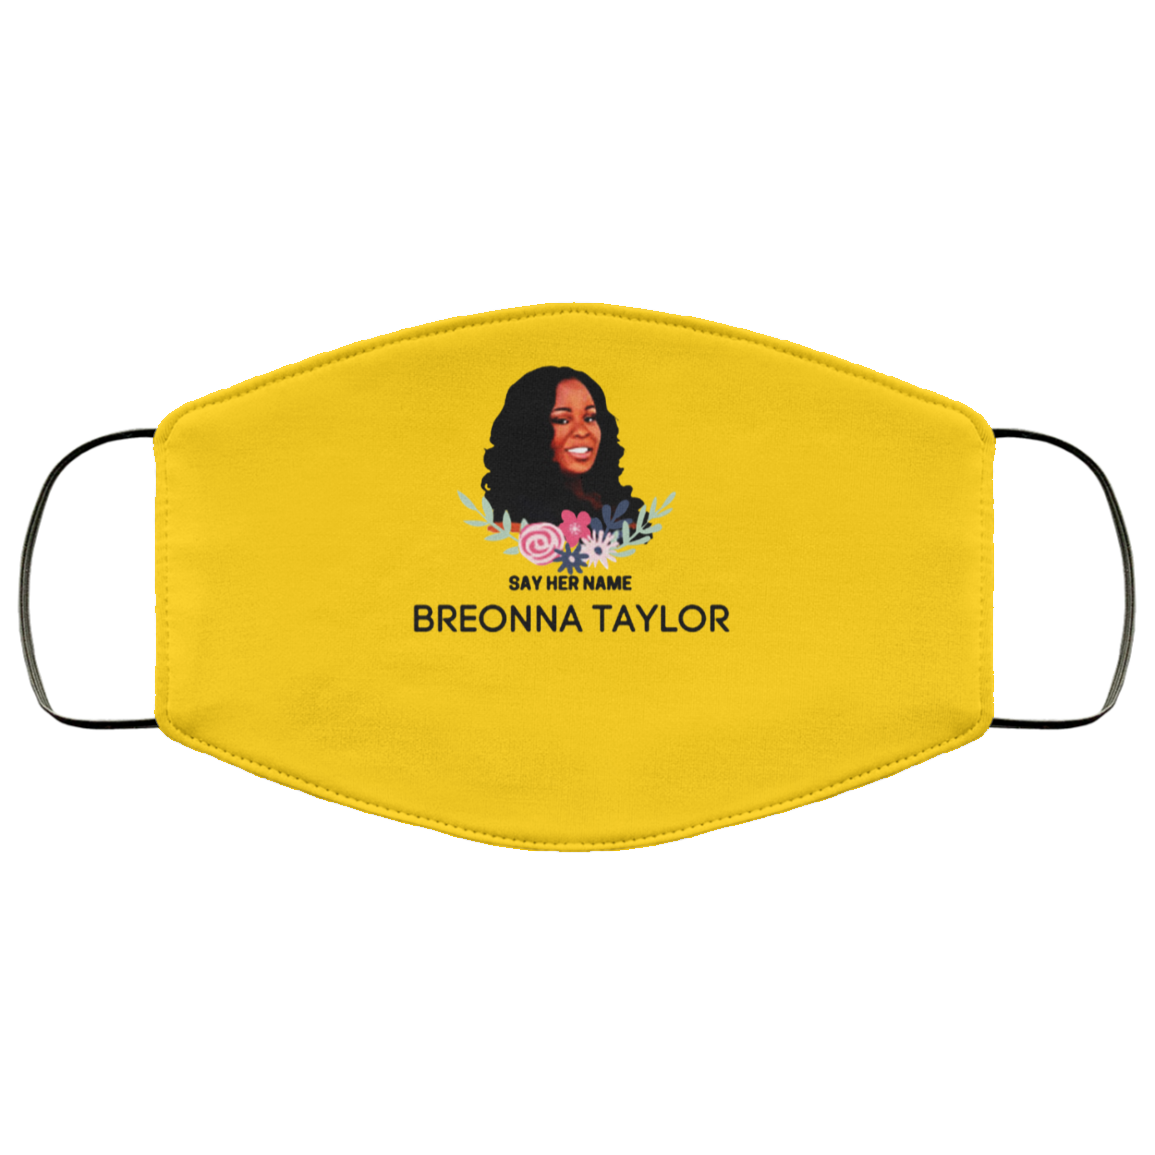 Say Her Name Breonna Taylor Face Masks Be Kind Asl In 2020 Face Mask Say Her Name Sunglasses Case